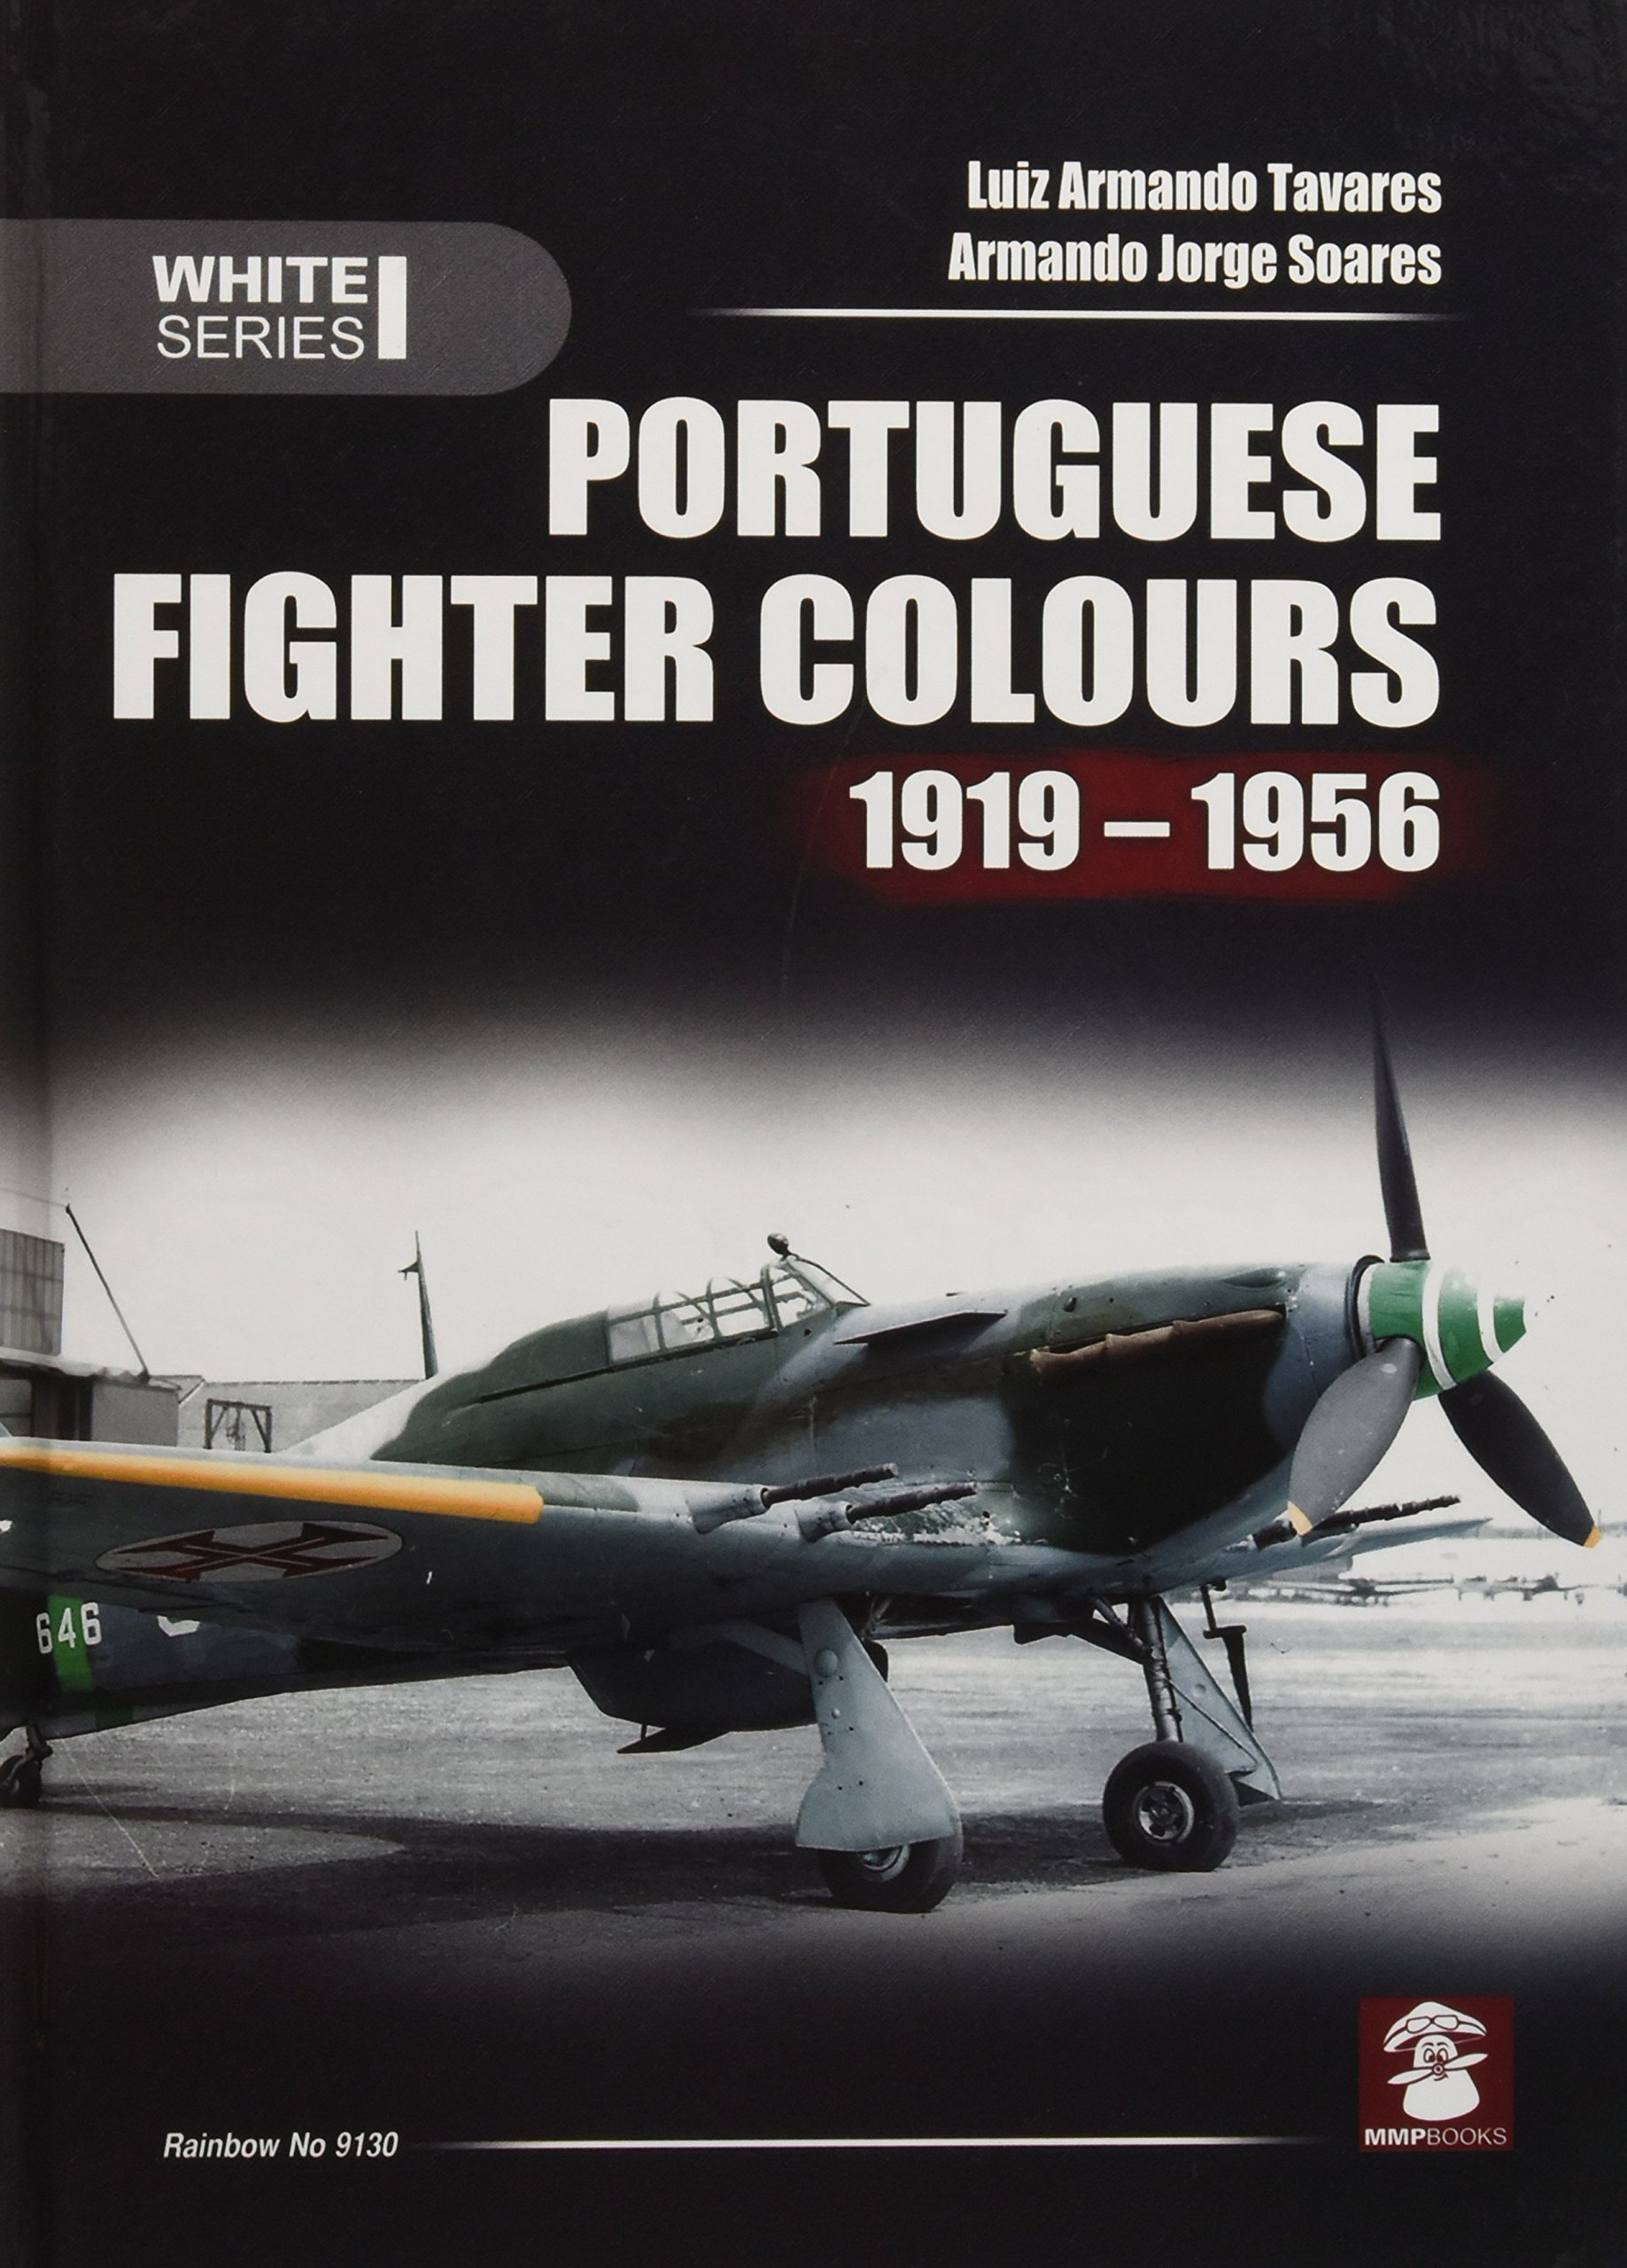 Portuguese Fighter Colours 1919-1956: Piston-Engine Fighters: Luis